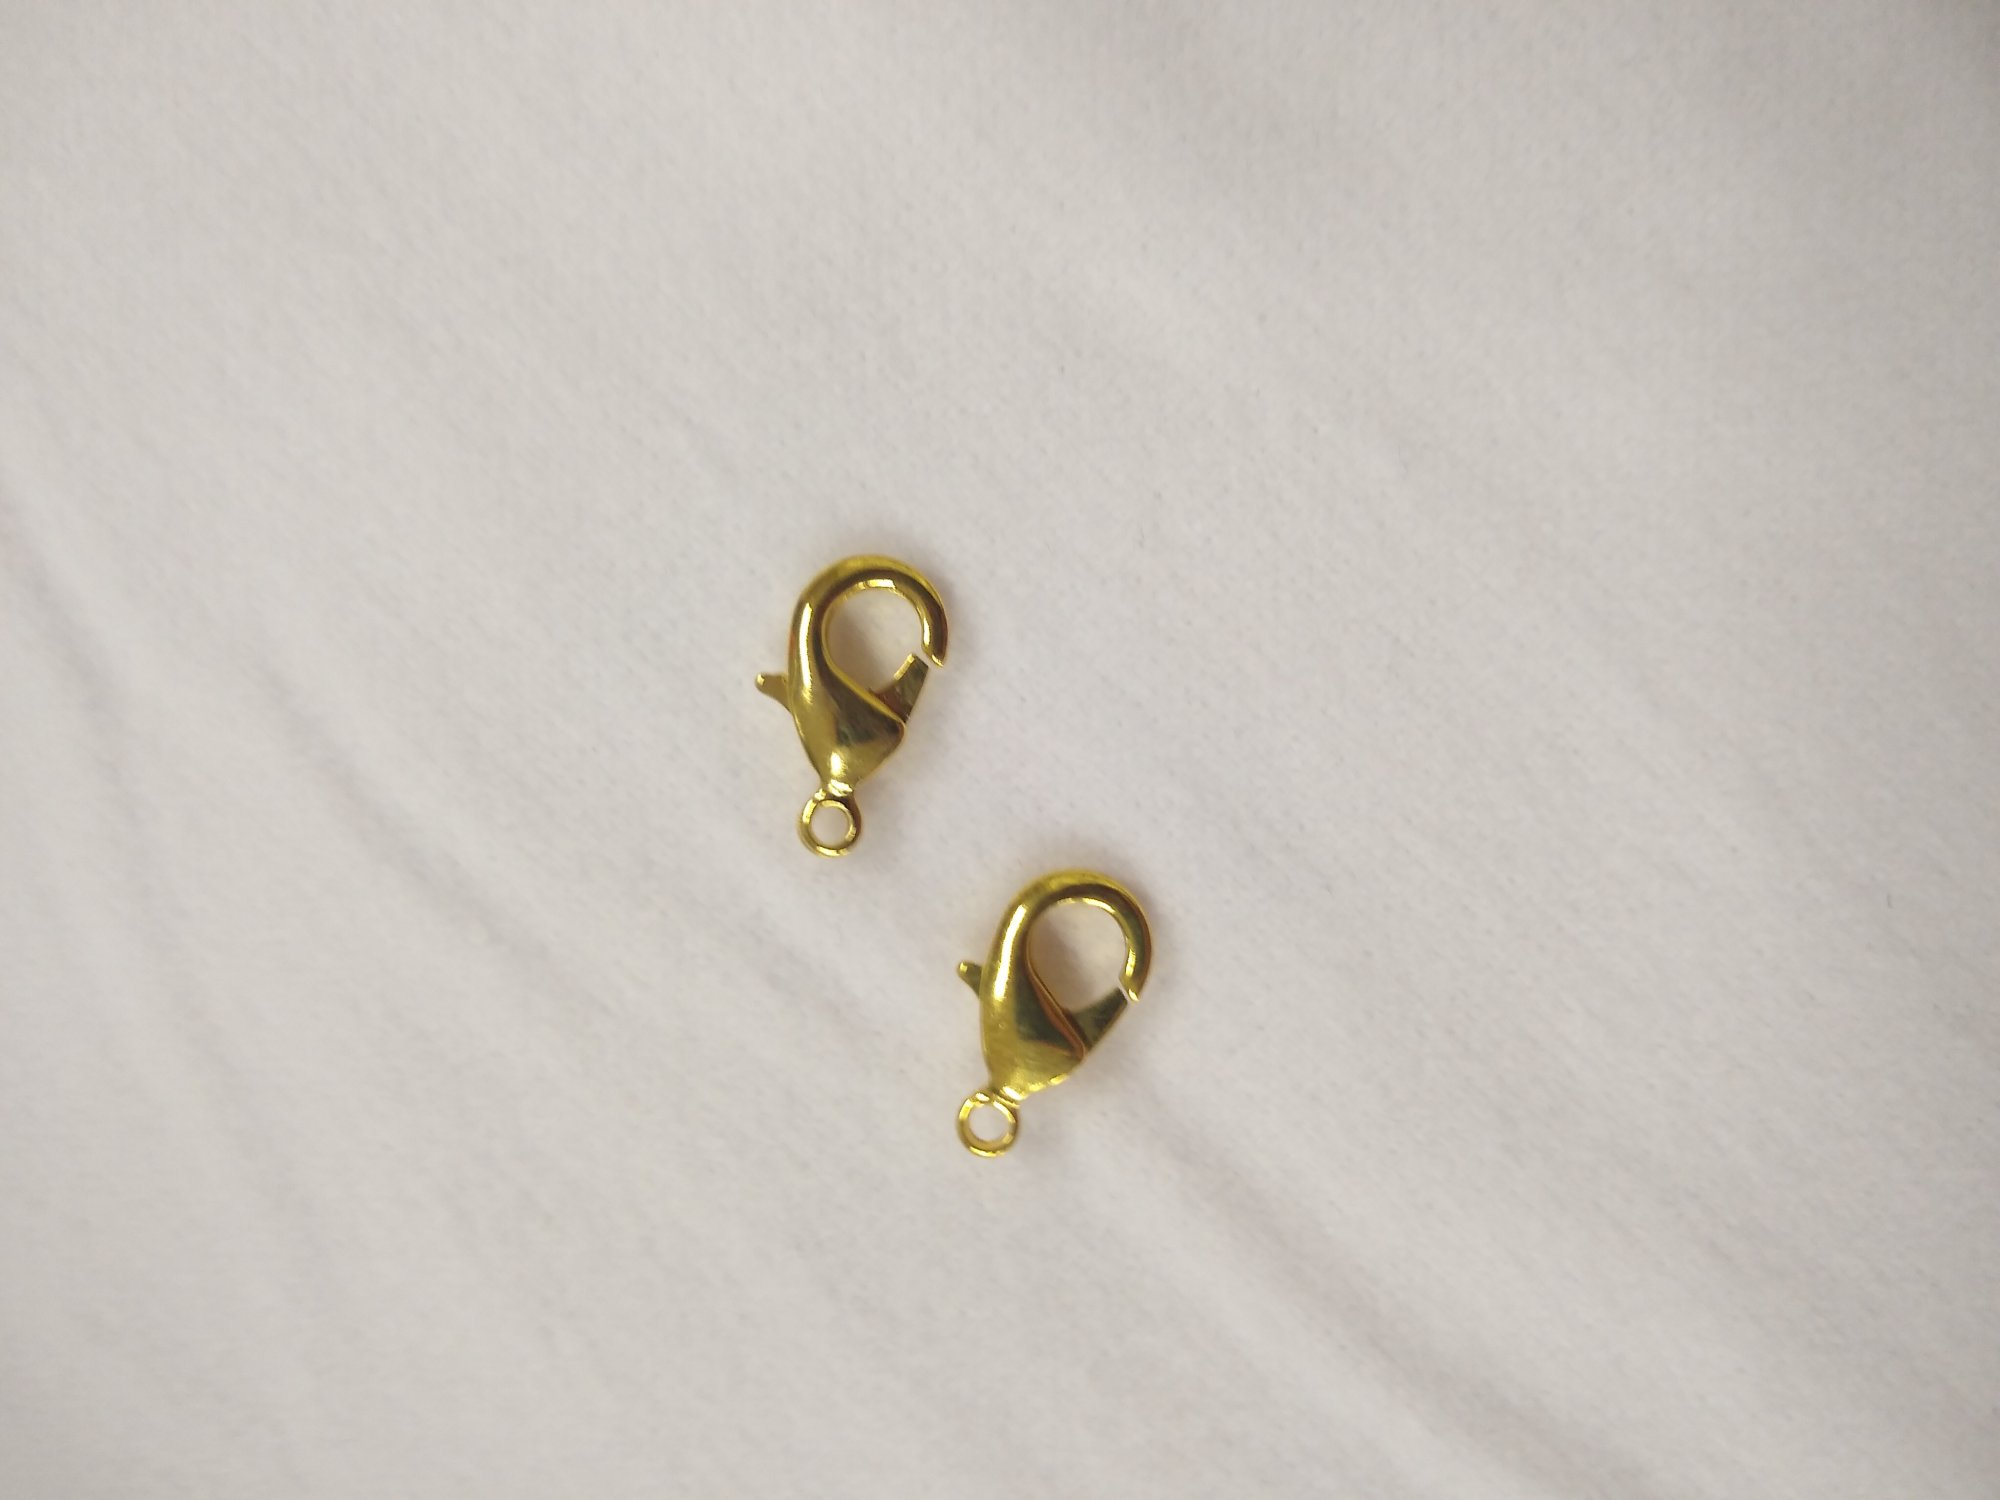 Necklace clasp-Gold